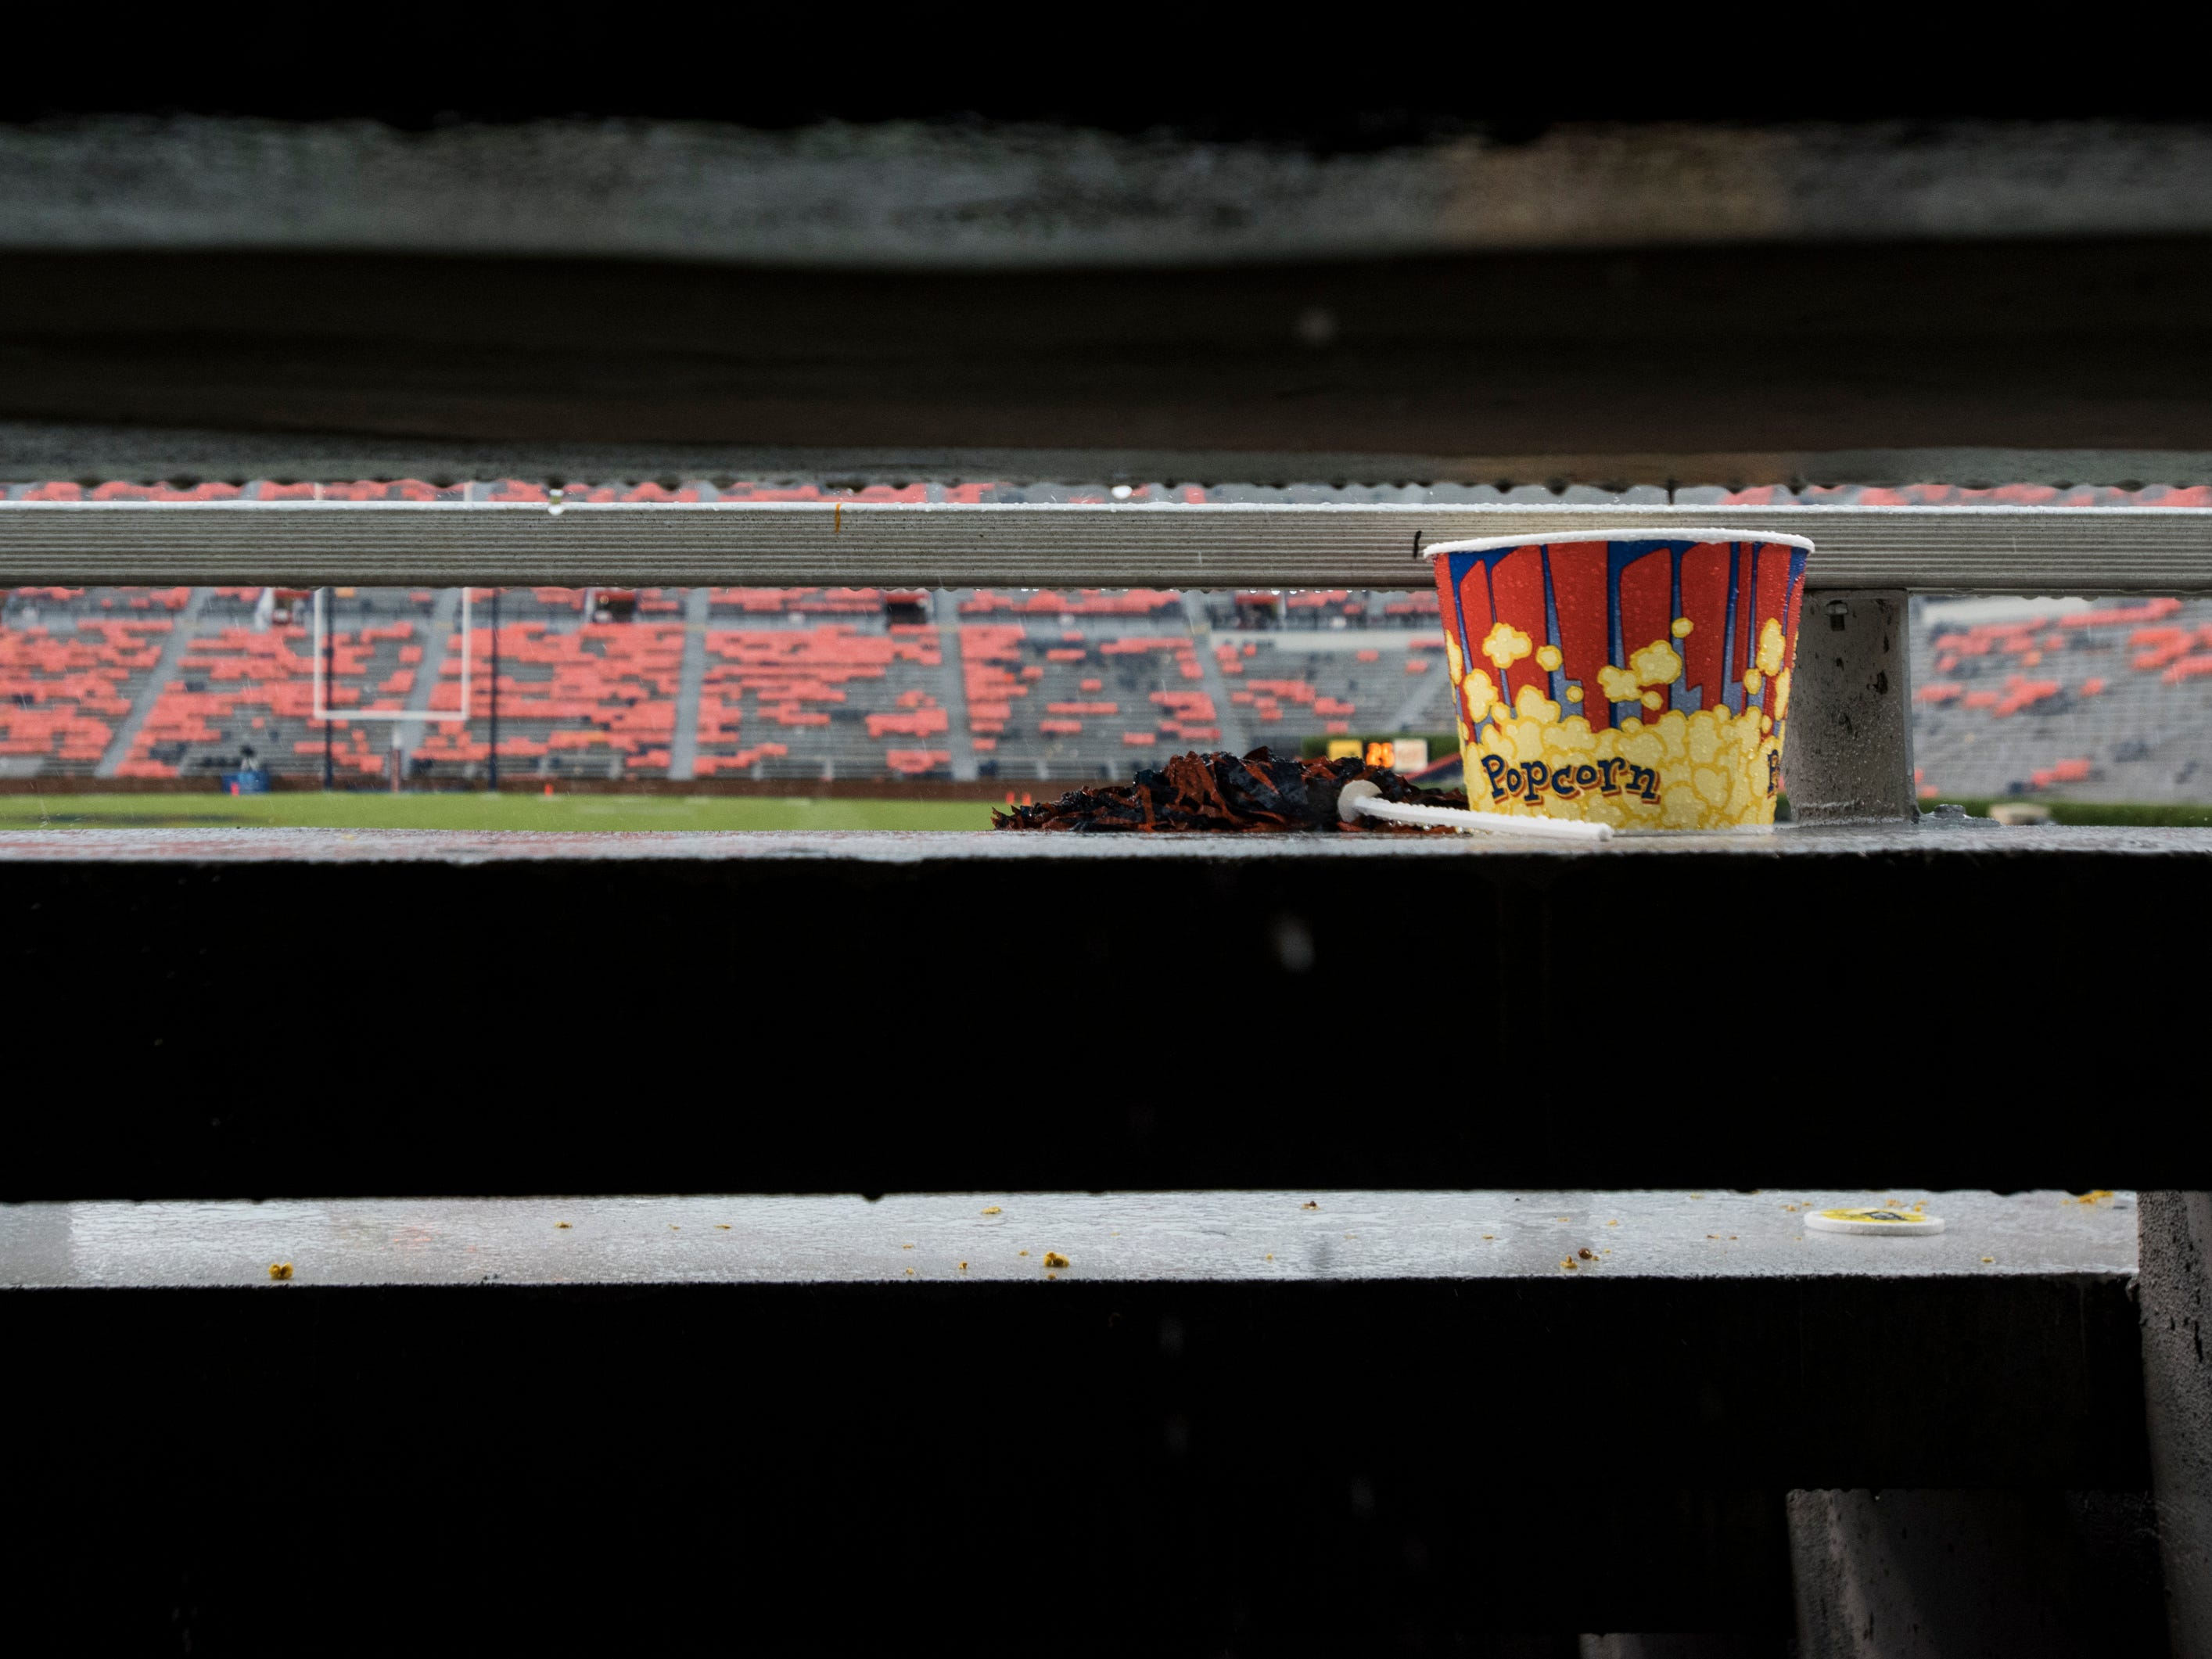 A pom-pom and popcorn tub is left behind in the bleachers at Jordan-Hare Stadium in Auburn, Ala., on Saturday, Sept. 29, 2018. Auburn leads Southern Miss 14-3, the game went into a weather delay with 4:27 left in the second quarter.